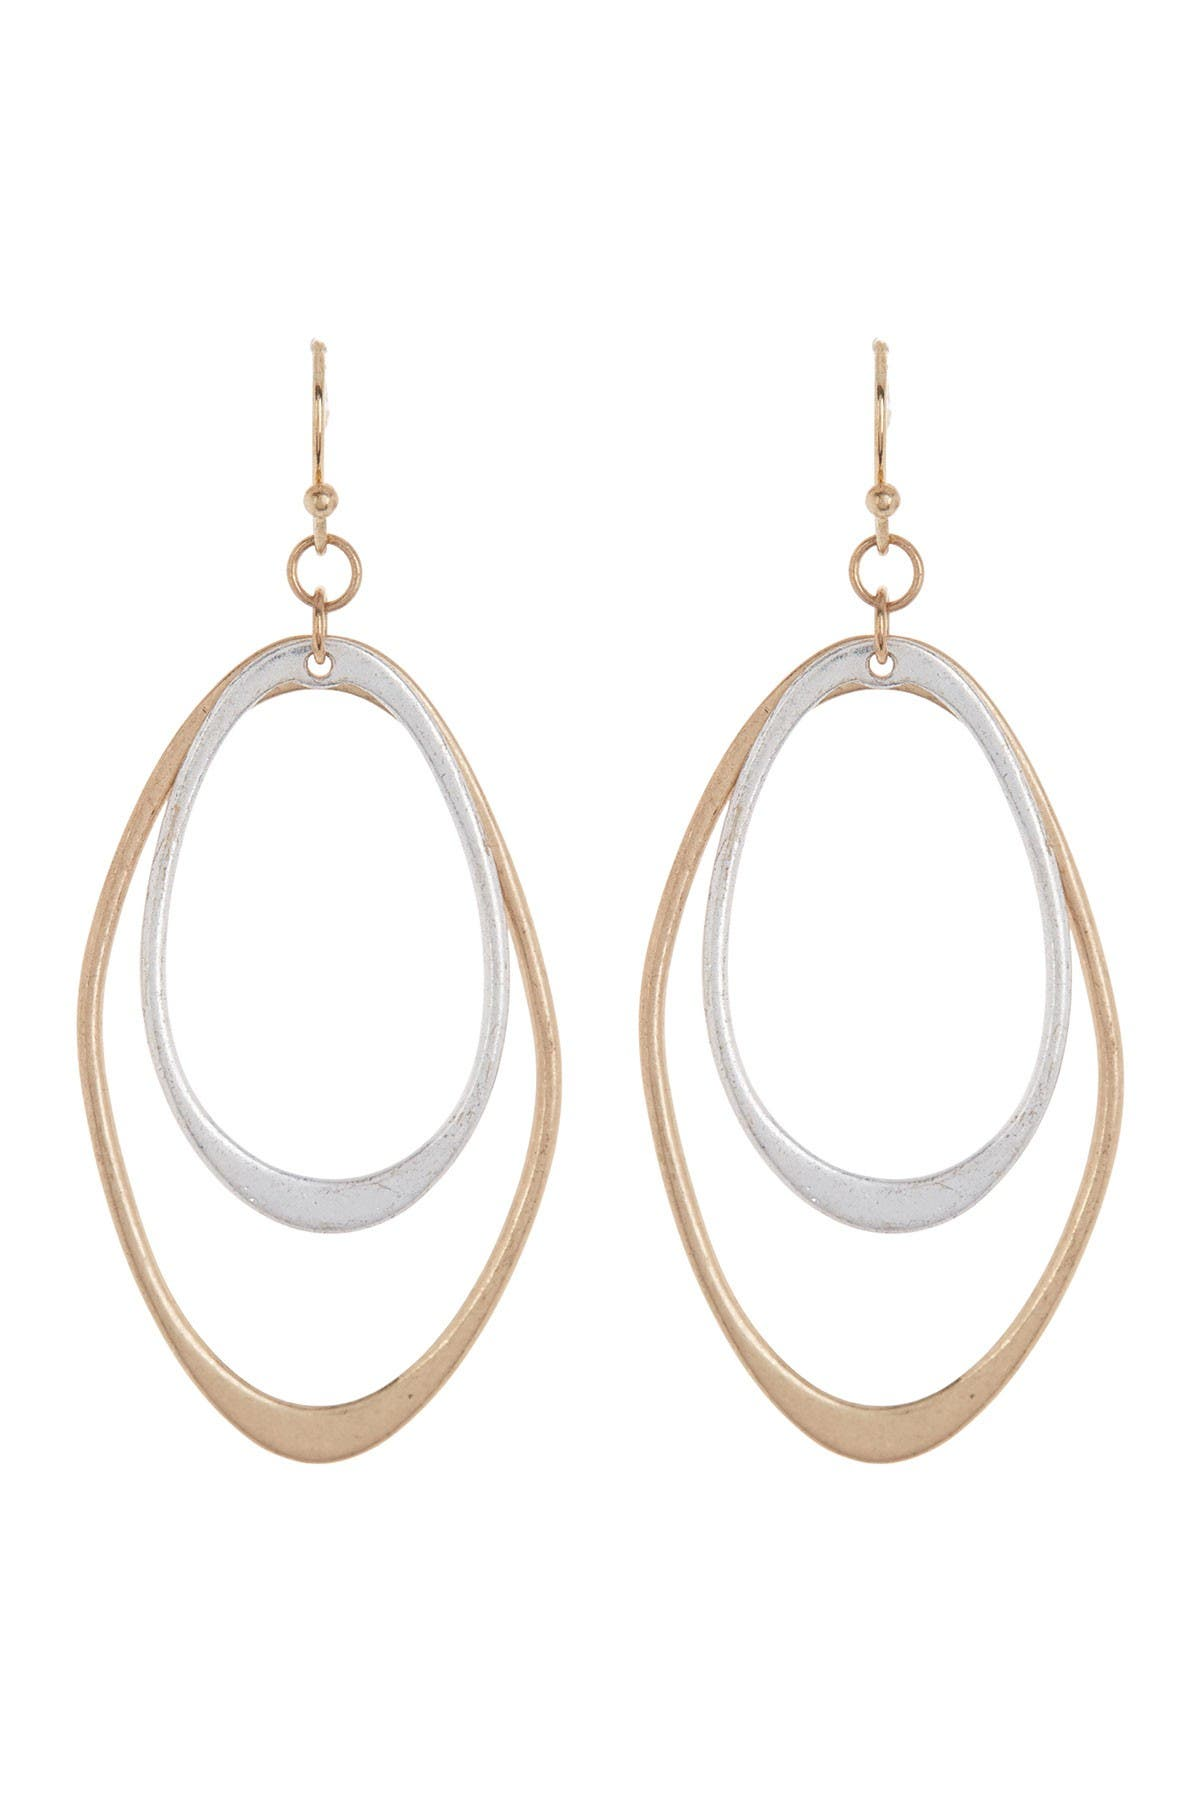 Image of AREA STARS Two Tone Double Oval Earrings